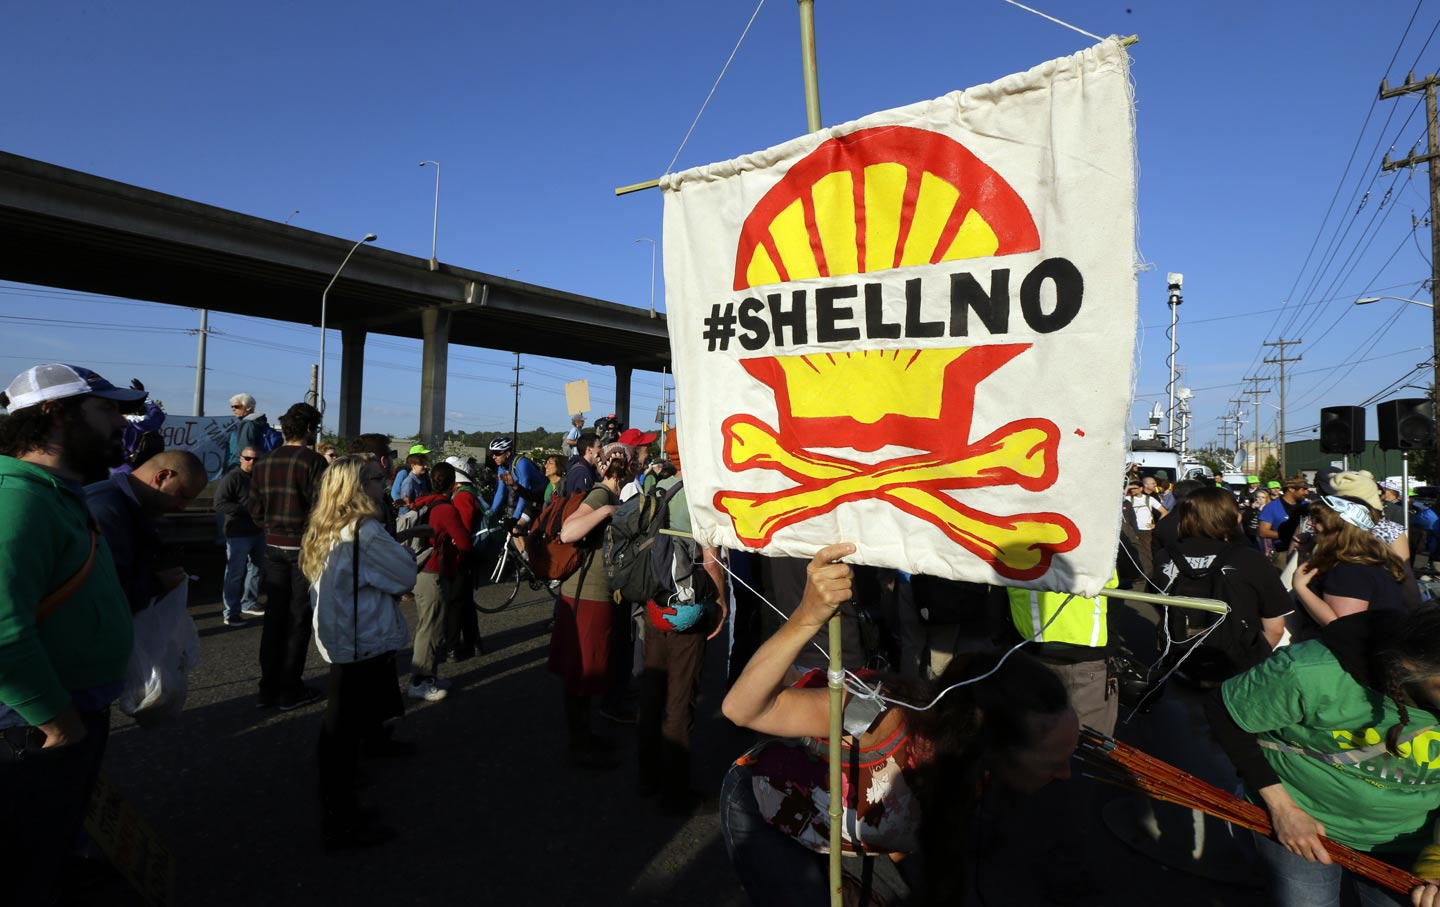 Shell No Protest